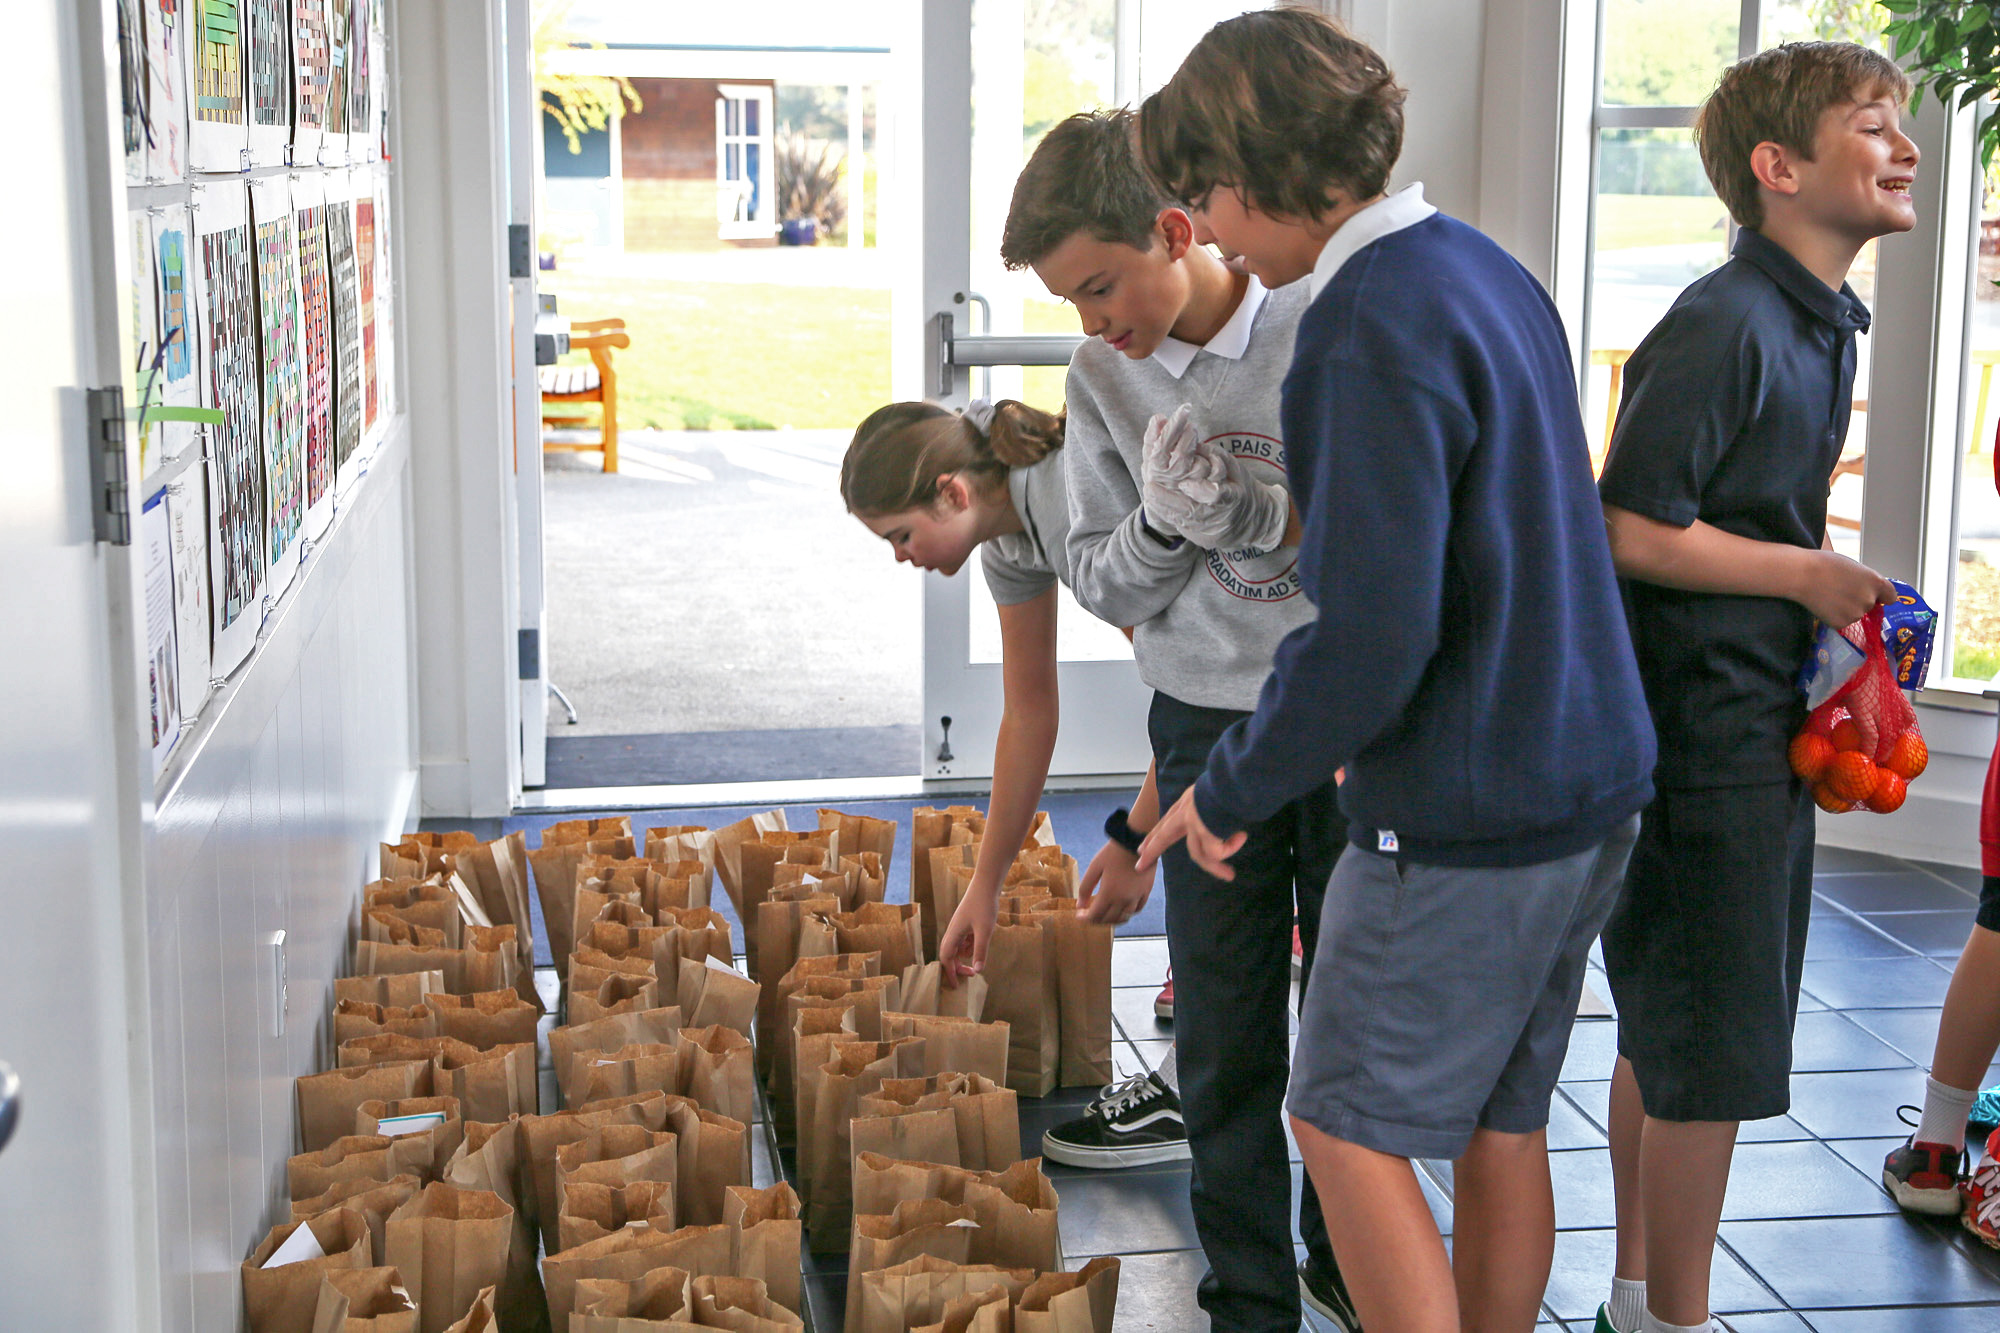 Packing lunches for St. Vincent de Paul's Society in Marin